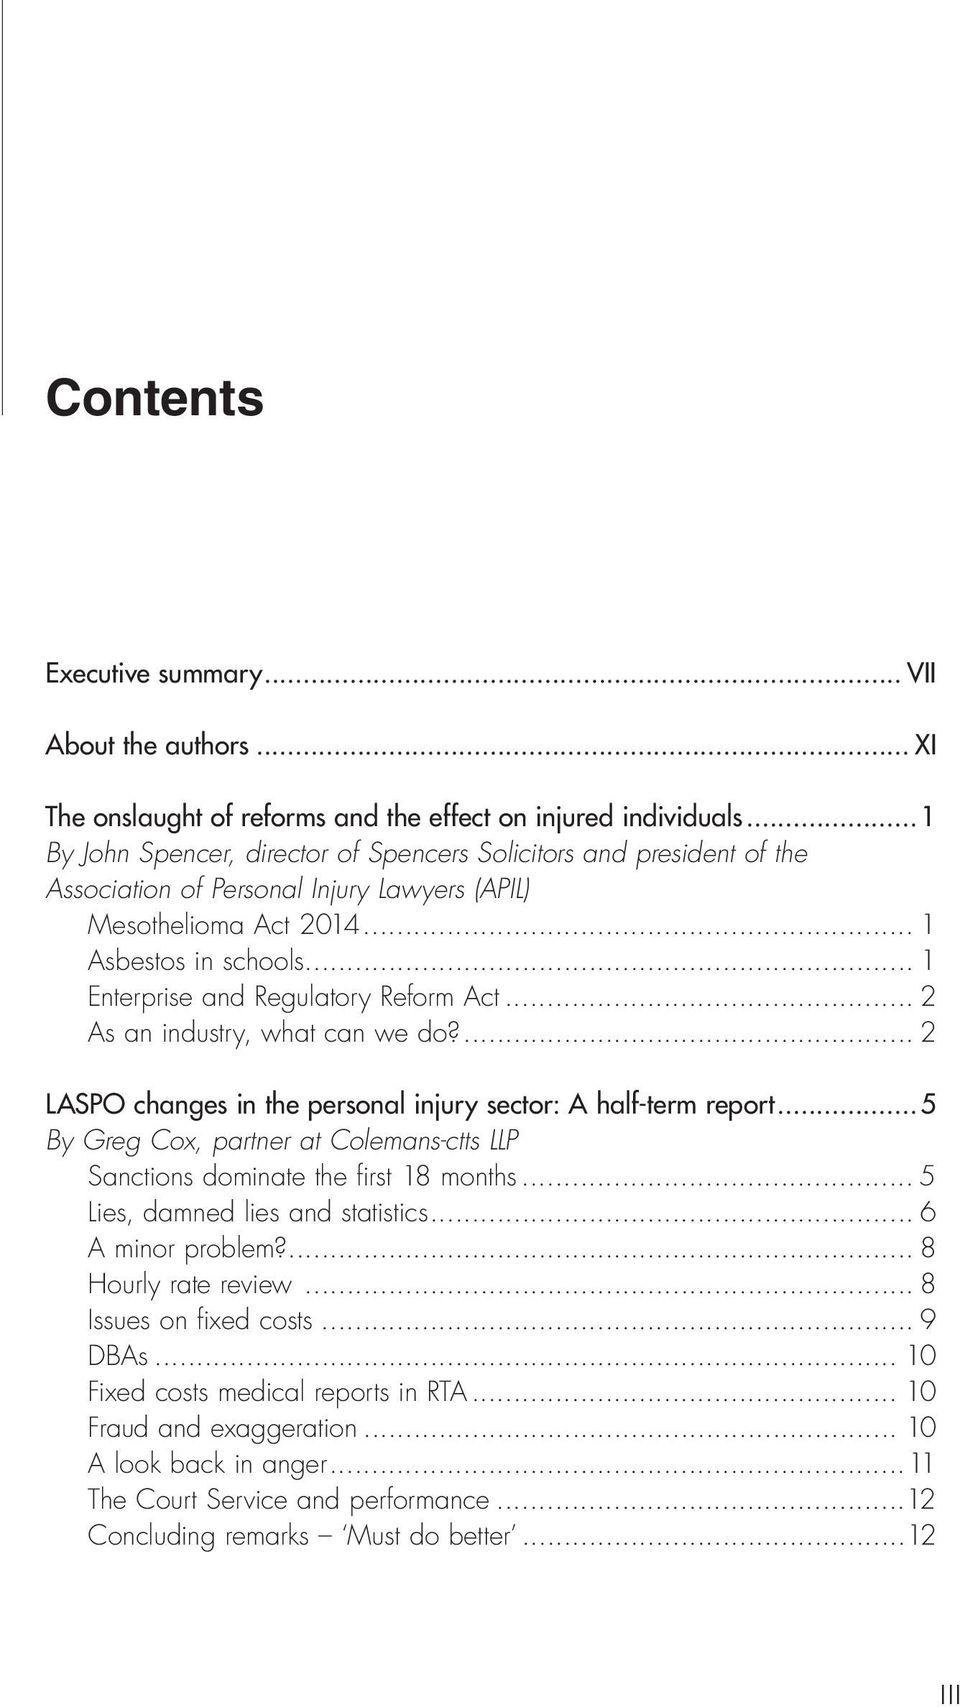 .. 1 Enterprise and Regulatory Reform Act... 2 As an industry, what can we do?... 2 LASPO changes in the personal injury sector: A half-term report.